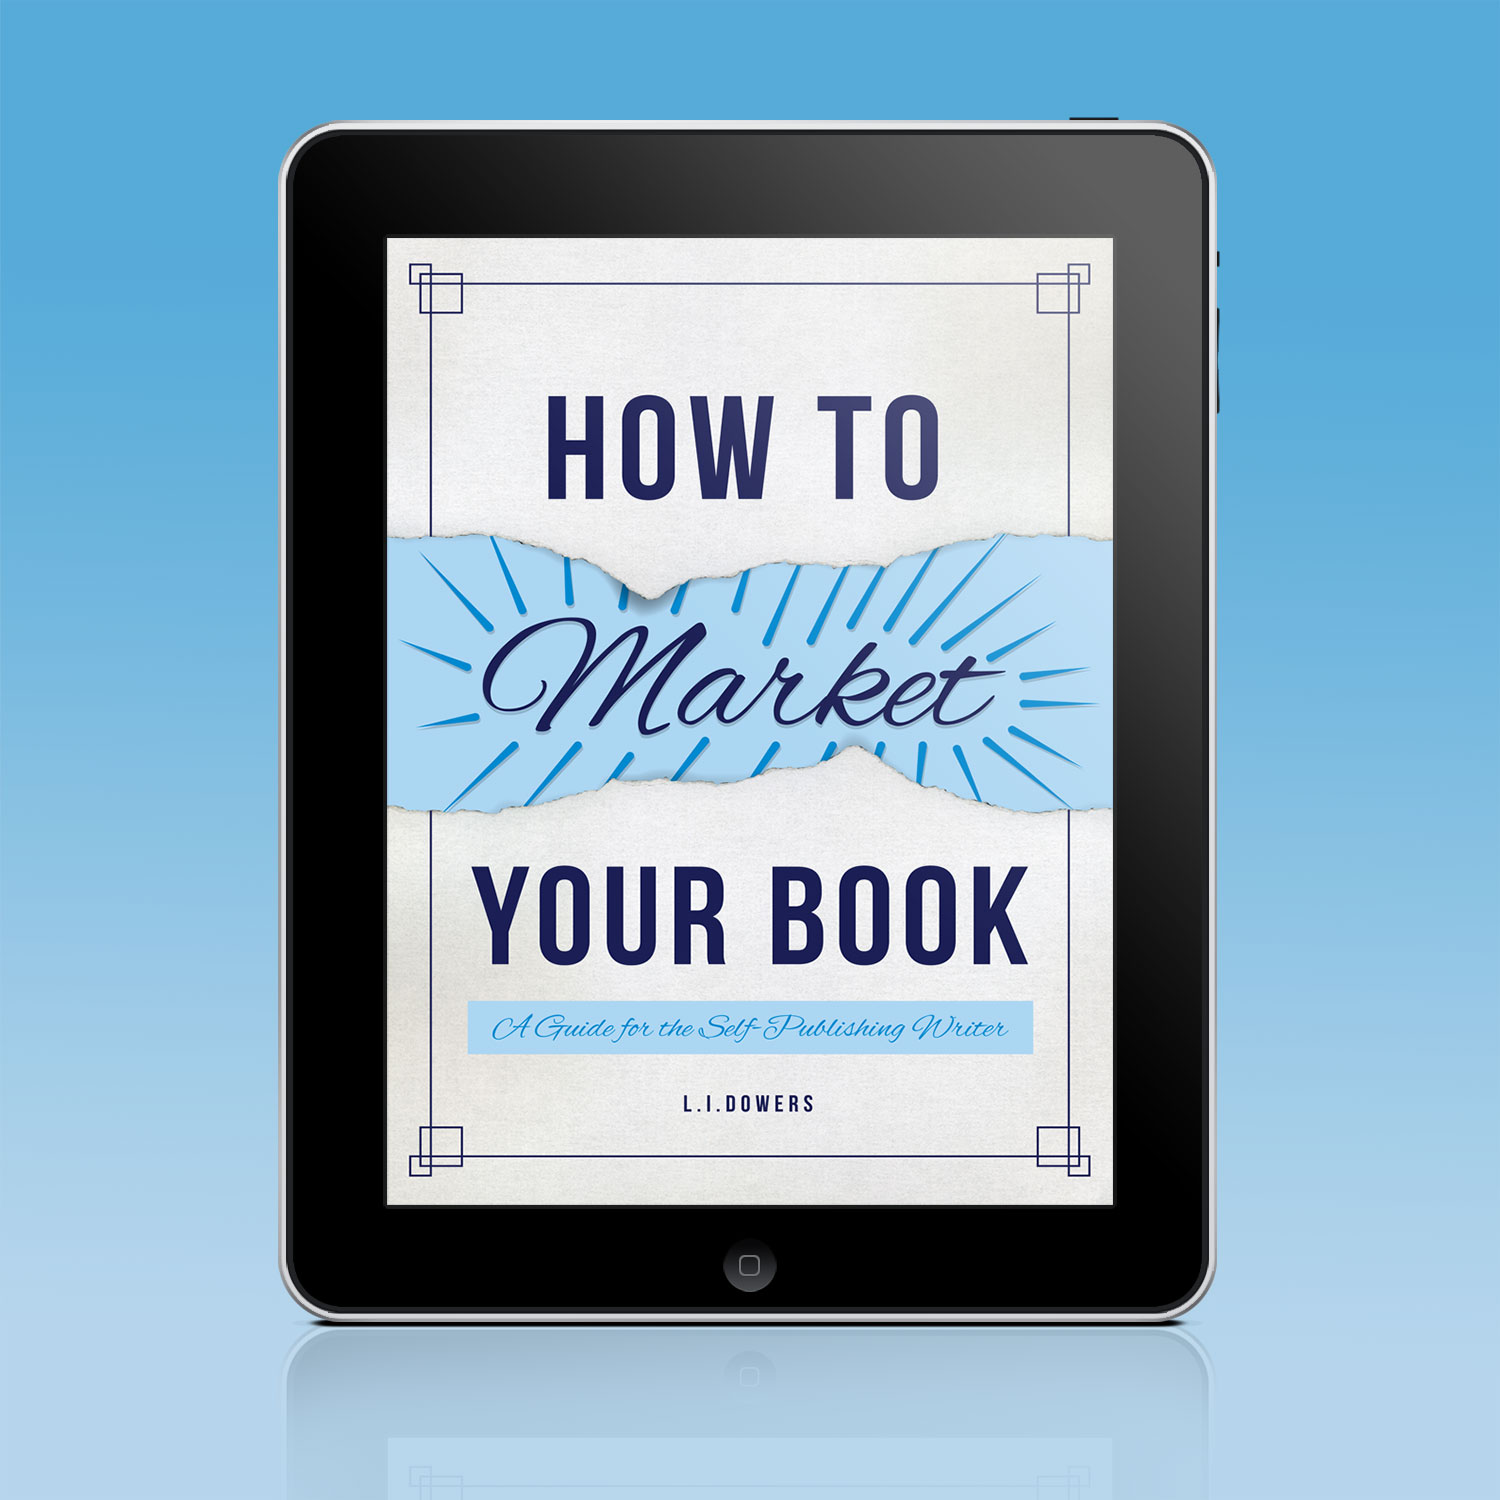 How-To-Market-Your-Business---iPad-MockUp-1.0